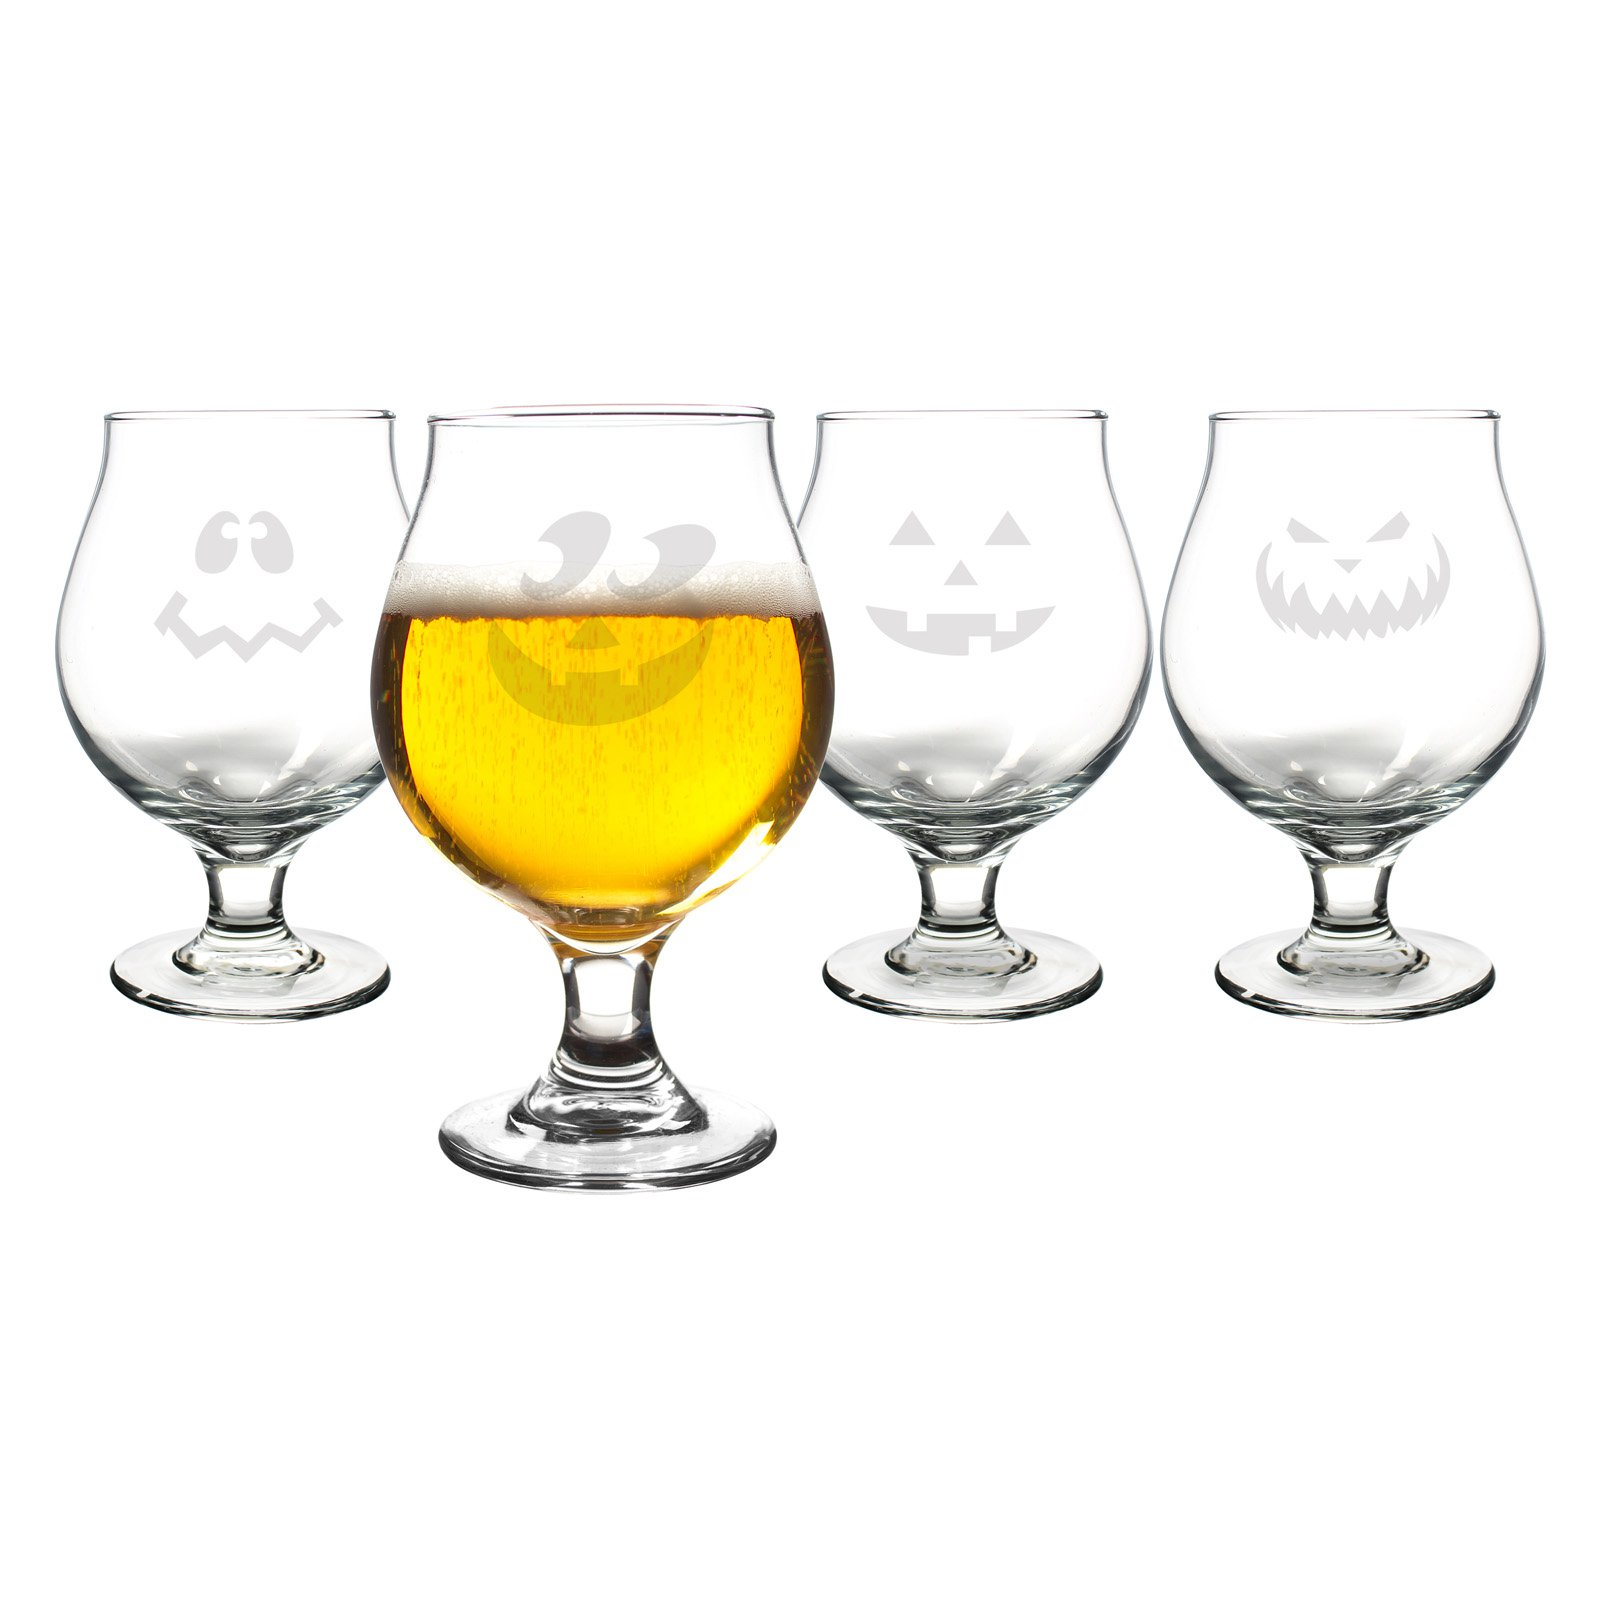 Cathys Concepts Jack-O-Lantern Belgian Beer Glasses Set of 4 by Cathys Concepts